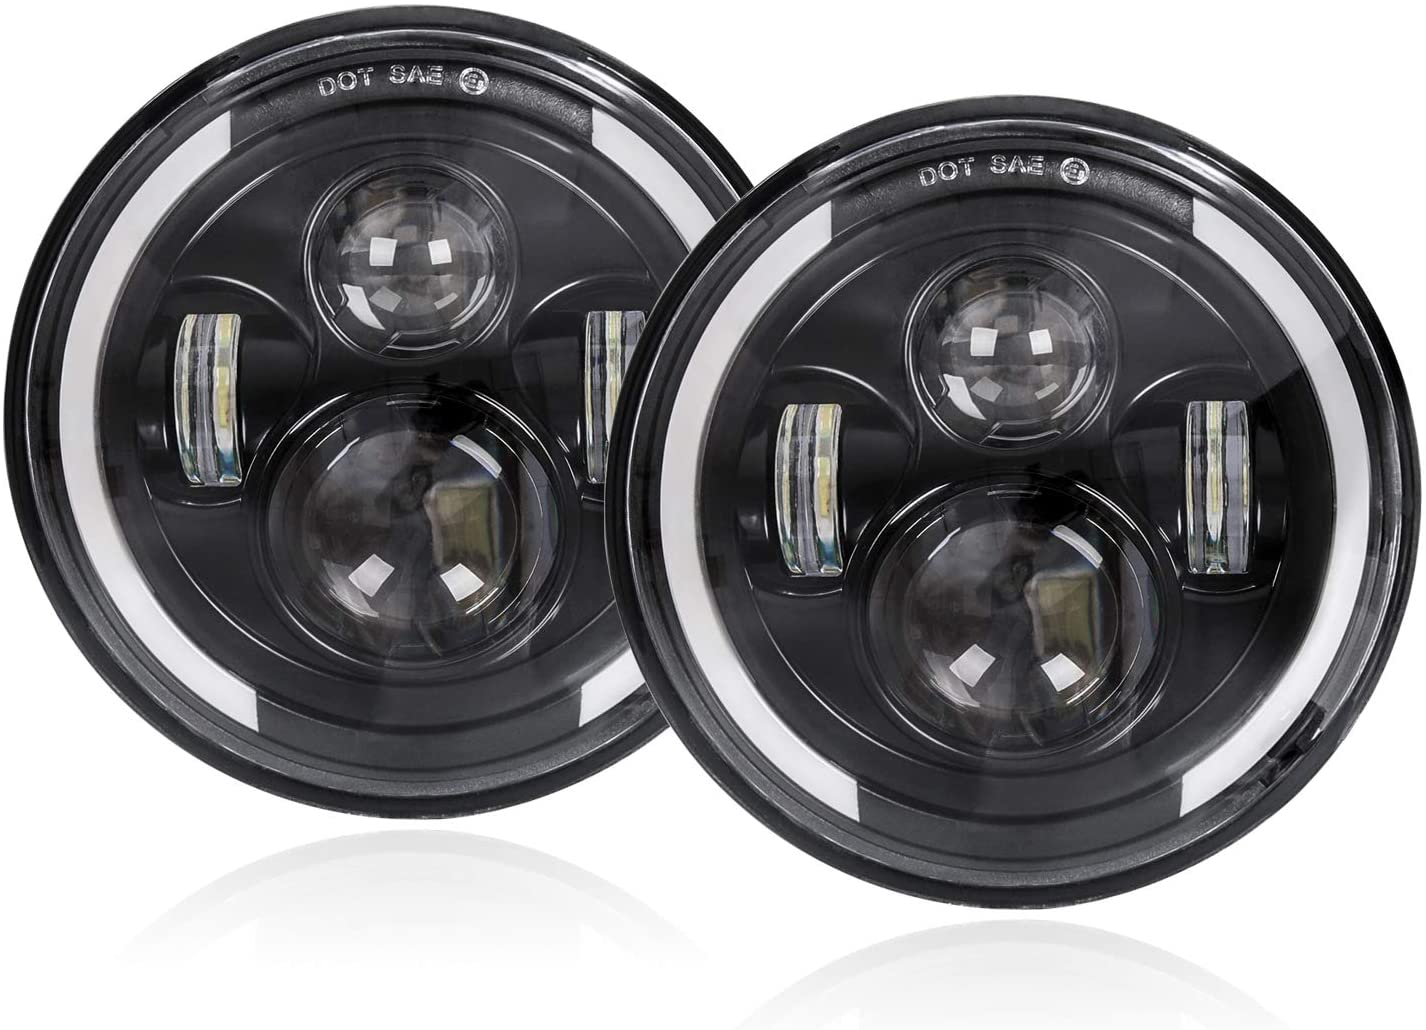 45 Watt – 7 Inch Replacement LED Headlights With DRL And Turn Signal – Bracket / Quarter Halo (Plug & Play)